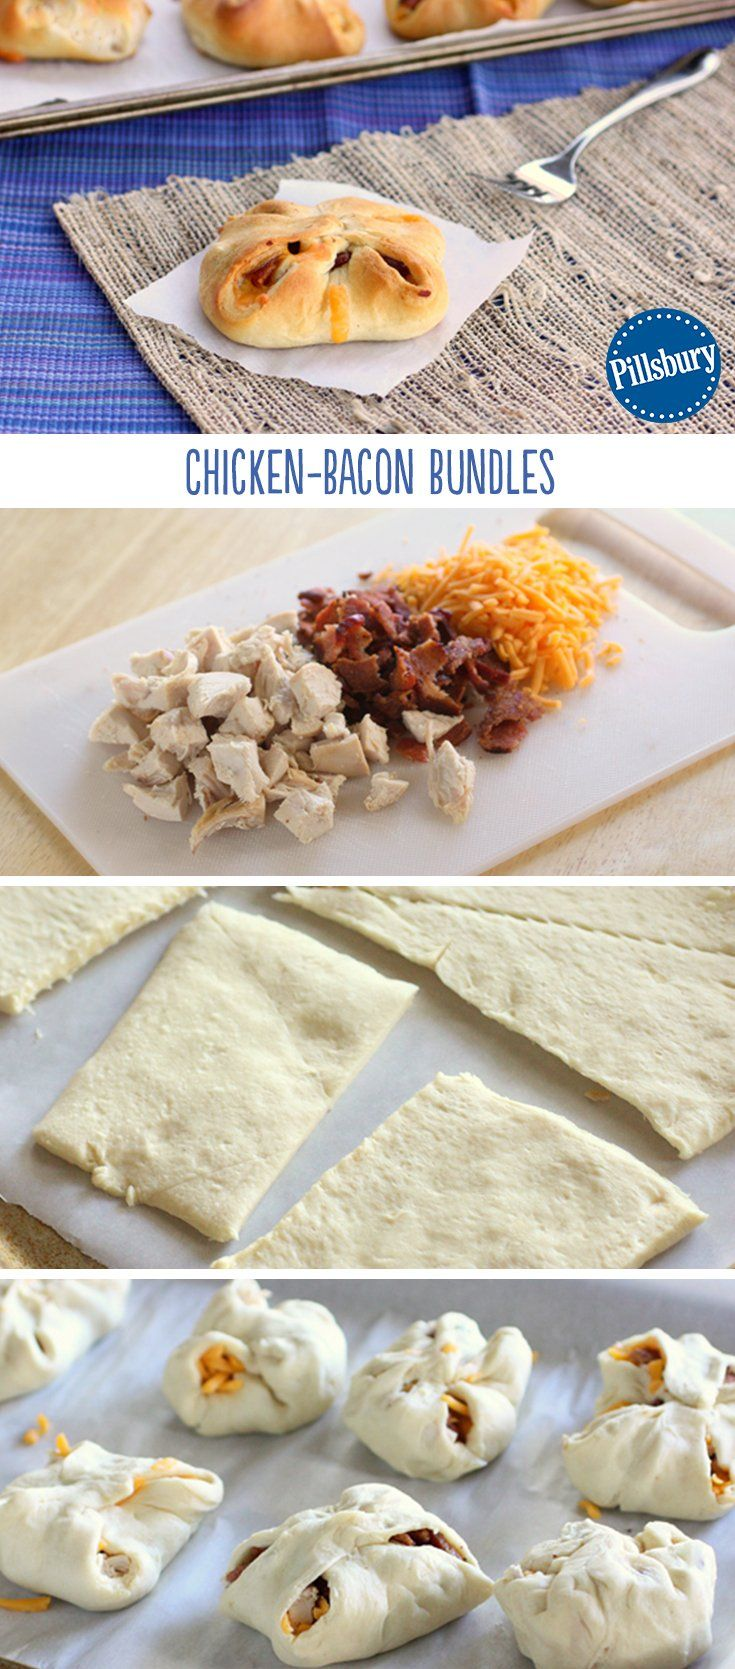 Have leftover cooked chicken? Bundle it up with some cheese and bacon for a quick weeknight dinner! These classic savory flavors are the perfect go-to meal for a crazy day.